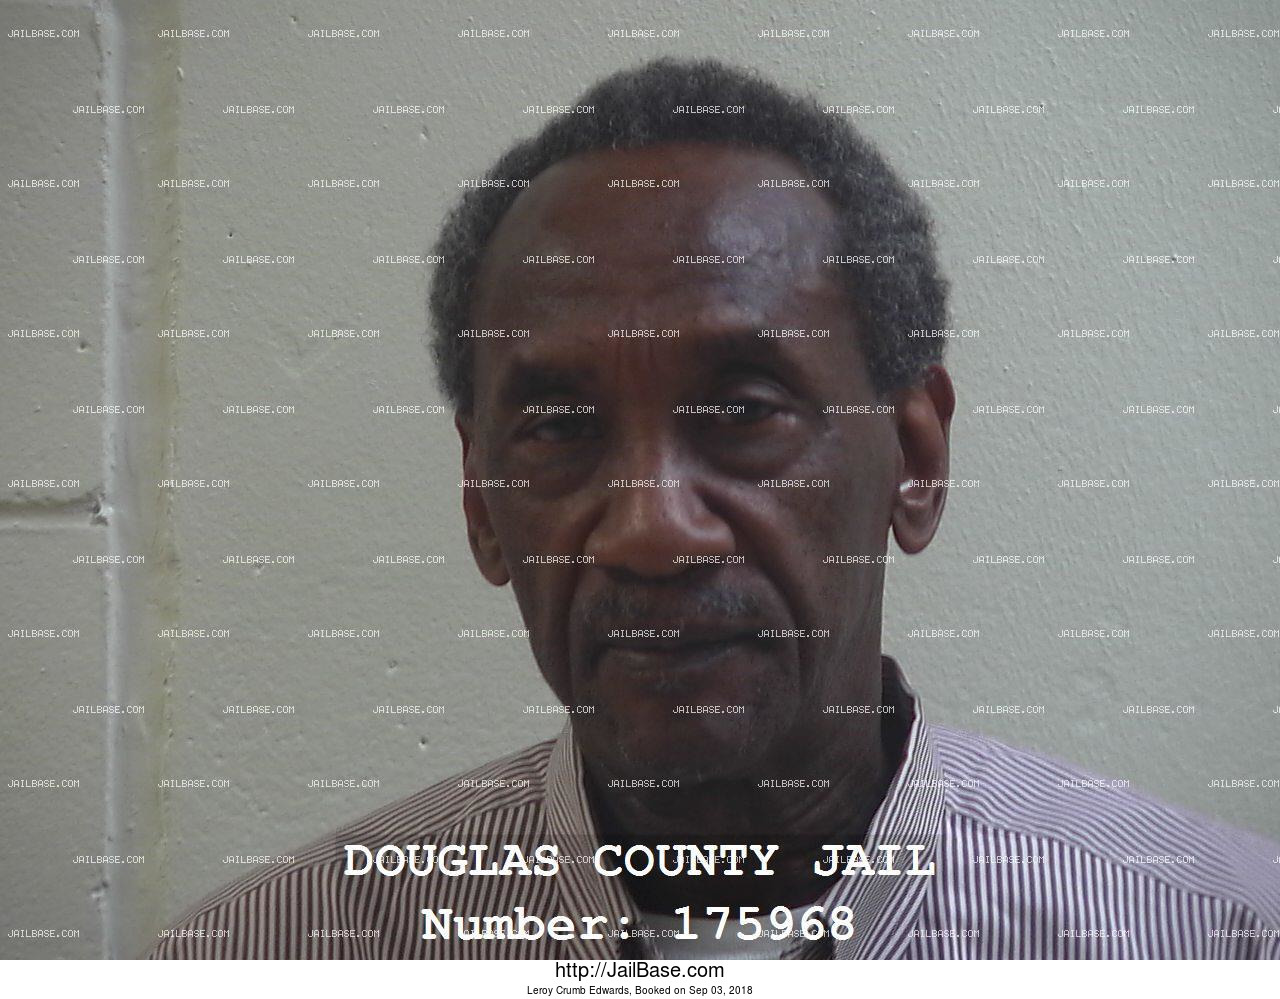 LEROY CRUMB EDWARDS mugshot picture